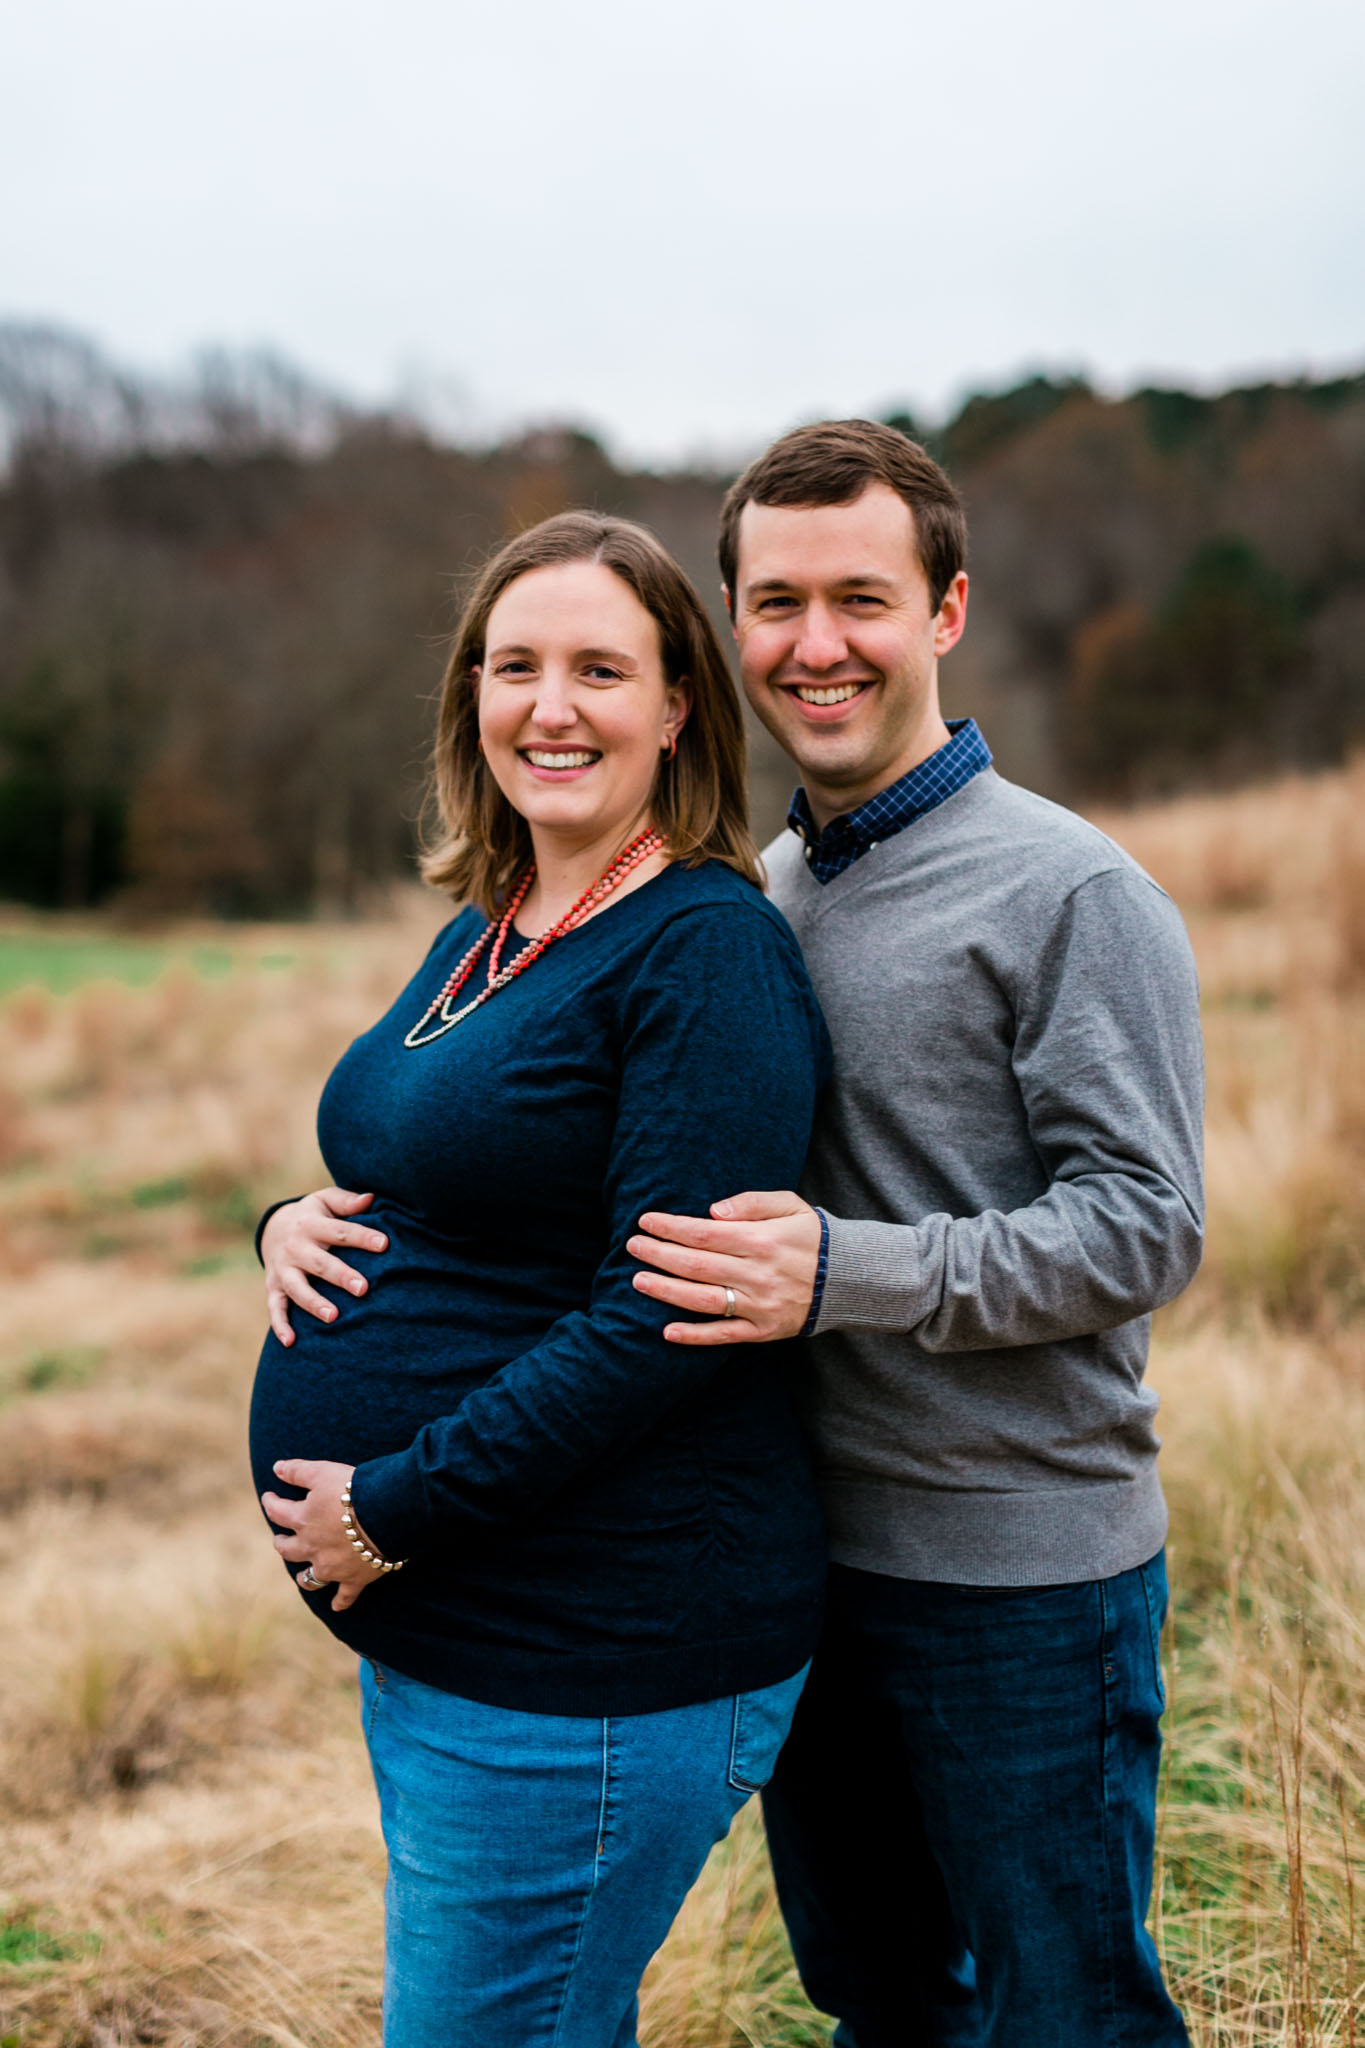 Outdoor maternity session at ncma | Raleigh Maternity Photographer | By G. Lin Photography